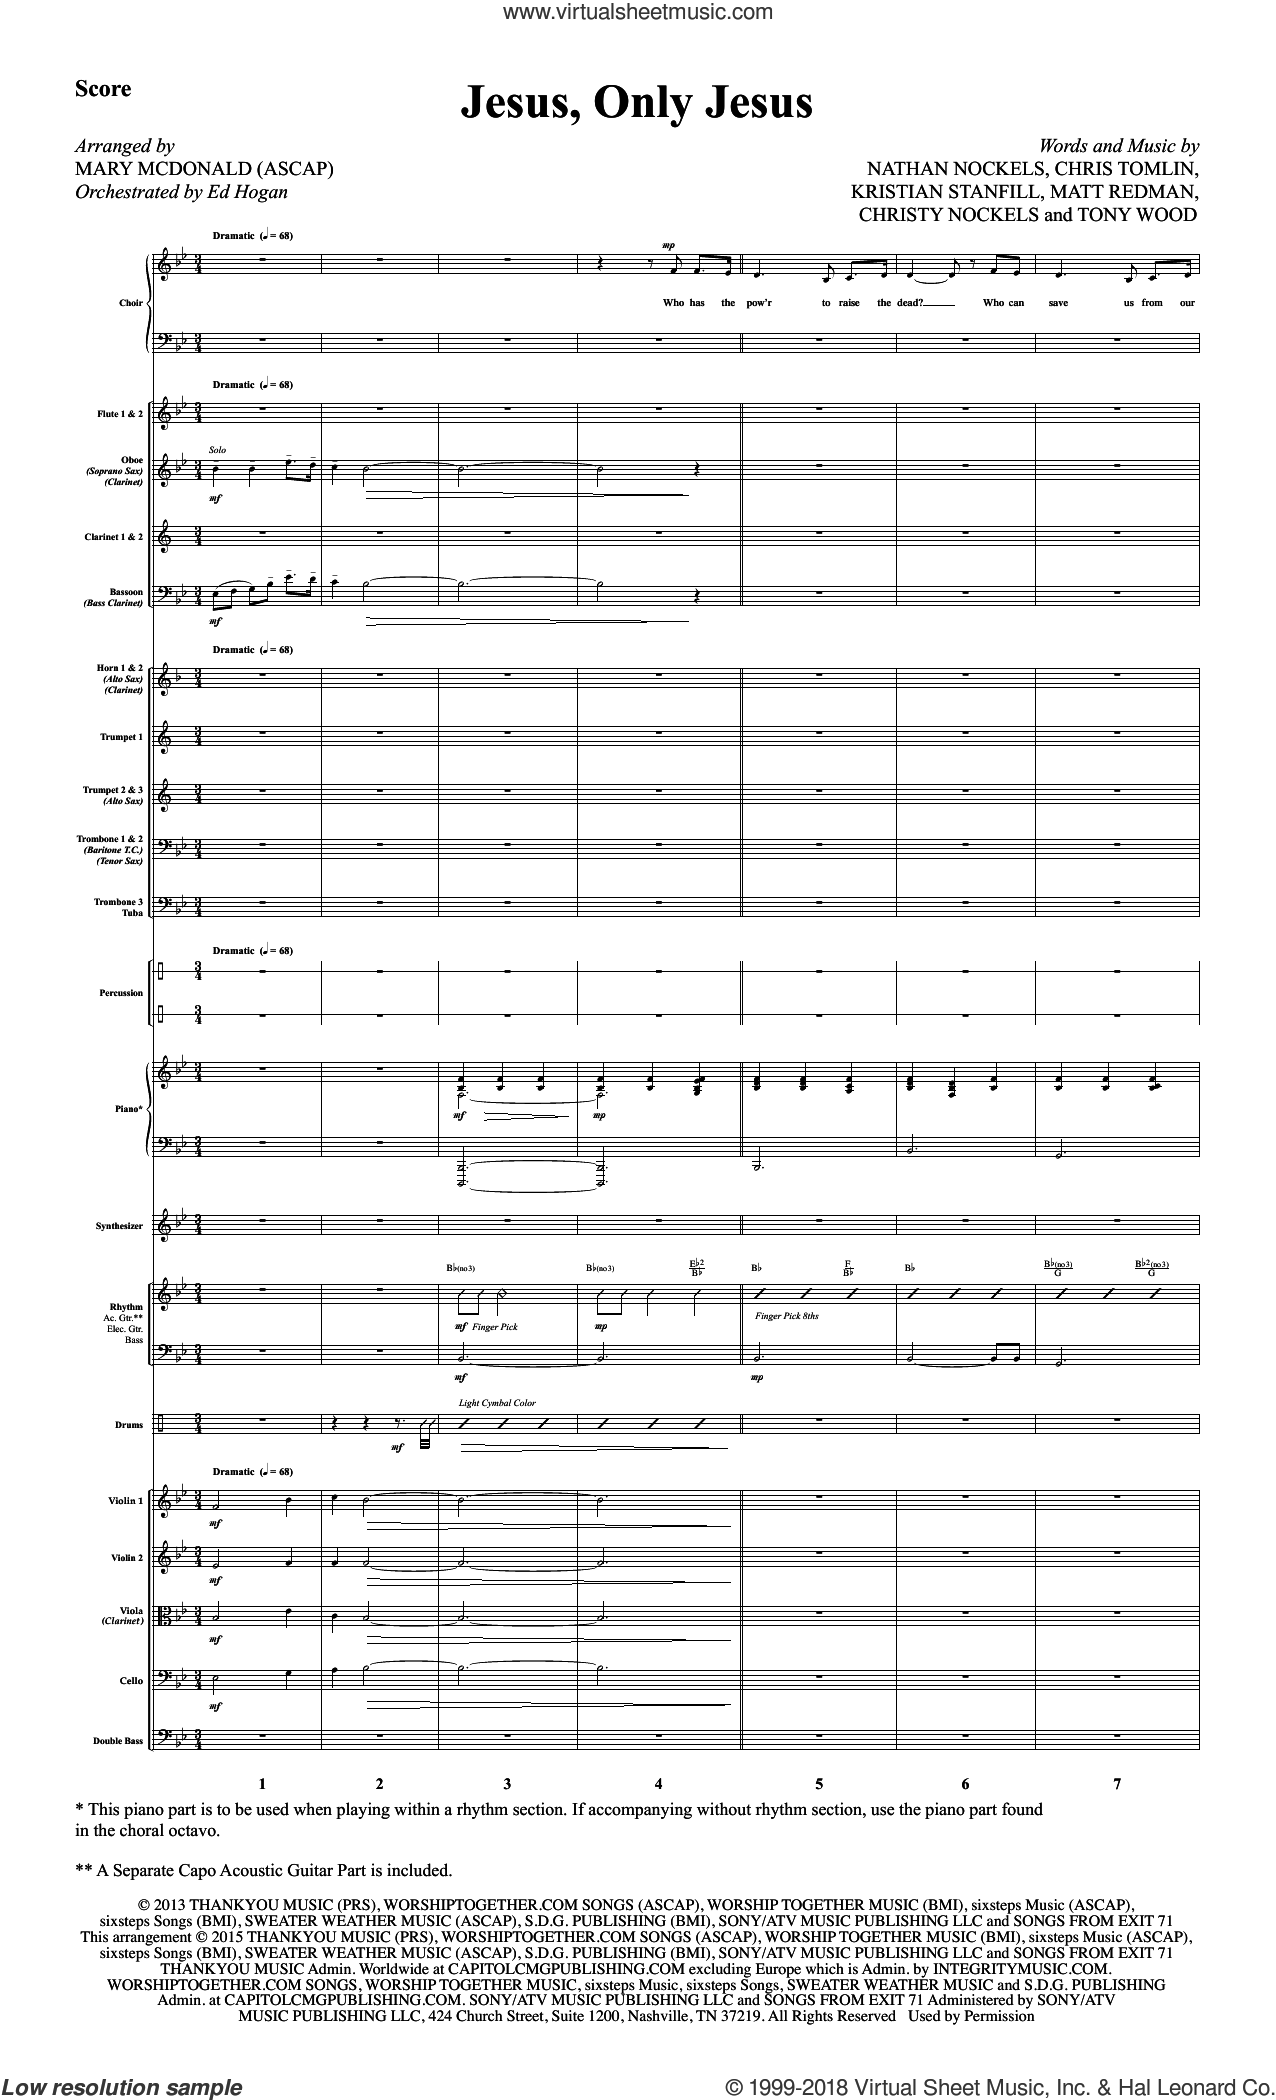 Jesus, Only Jesus (COMPLETE) sheet music for orchestra/band by Mary McDonald, Chris Tomlin, Christy Nockels, Kristian Stanfill, Matt Redman, Passion and Tony Wood, intermediate. Score Image Preview.